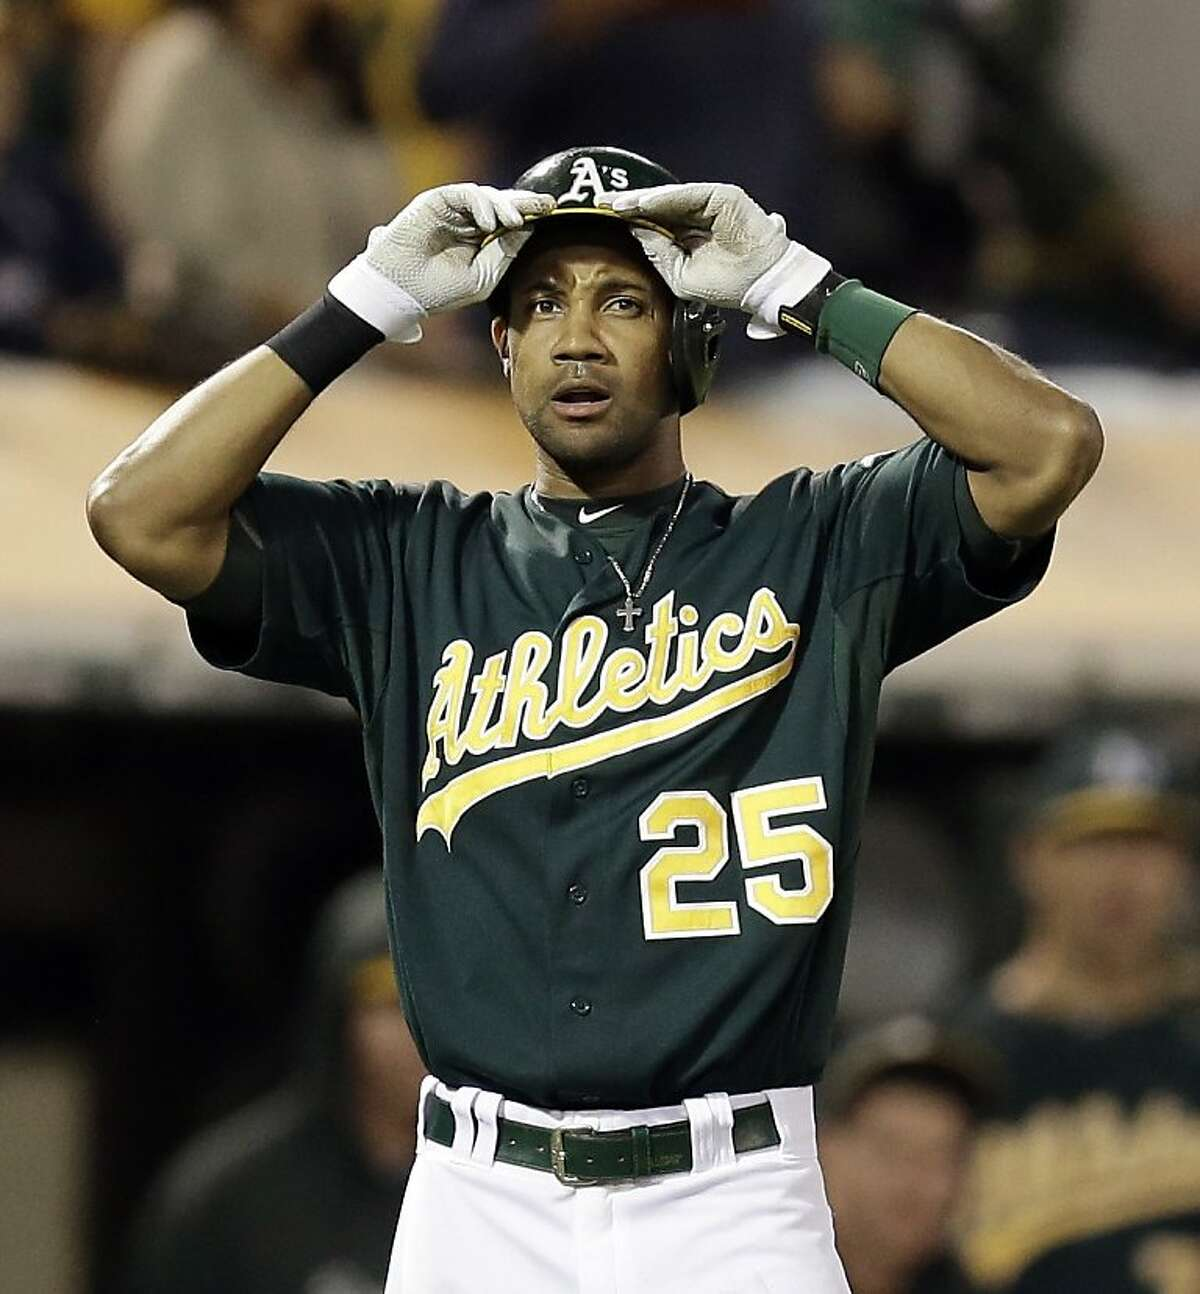 Oakland Athletics' Chris Young reacts after a ball he hit that would have won the game was ruled foul after review in the ninth inning of a baseball game against the Houston Astros Tuesday, Aug. 13, 2013, in Oakland, Calif. (AP Photo/Ben Margot)